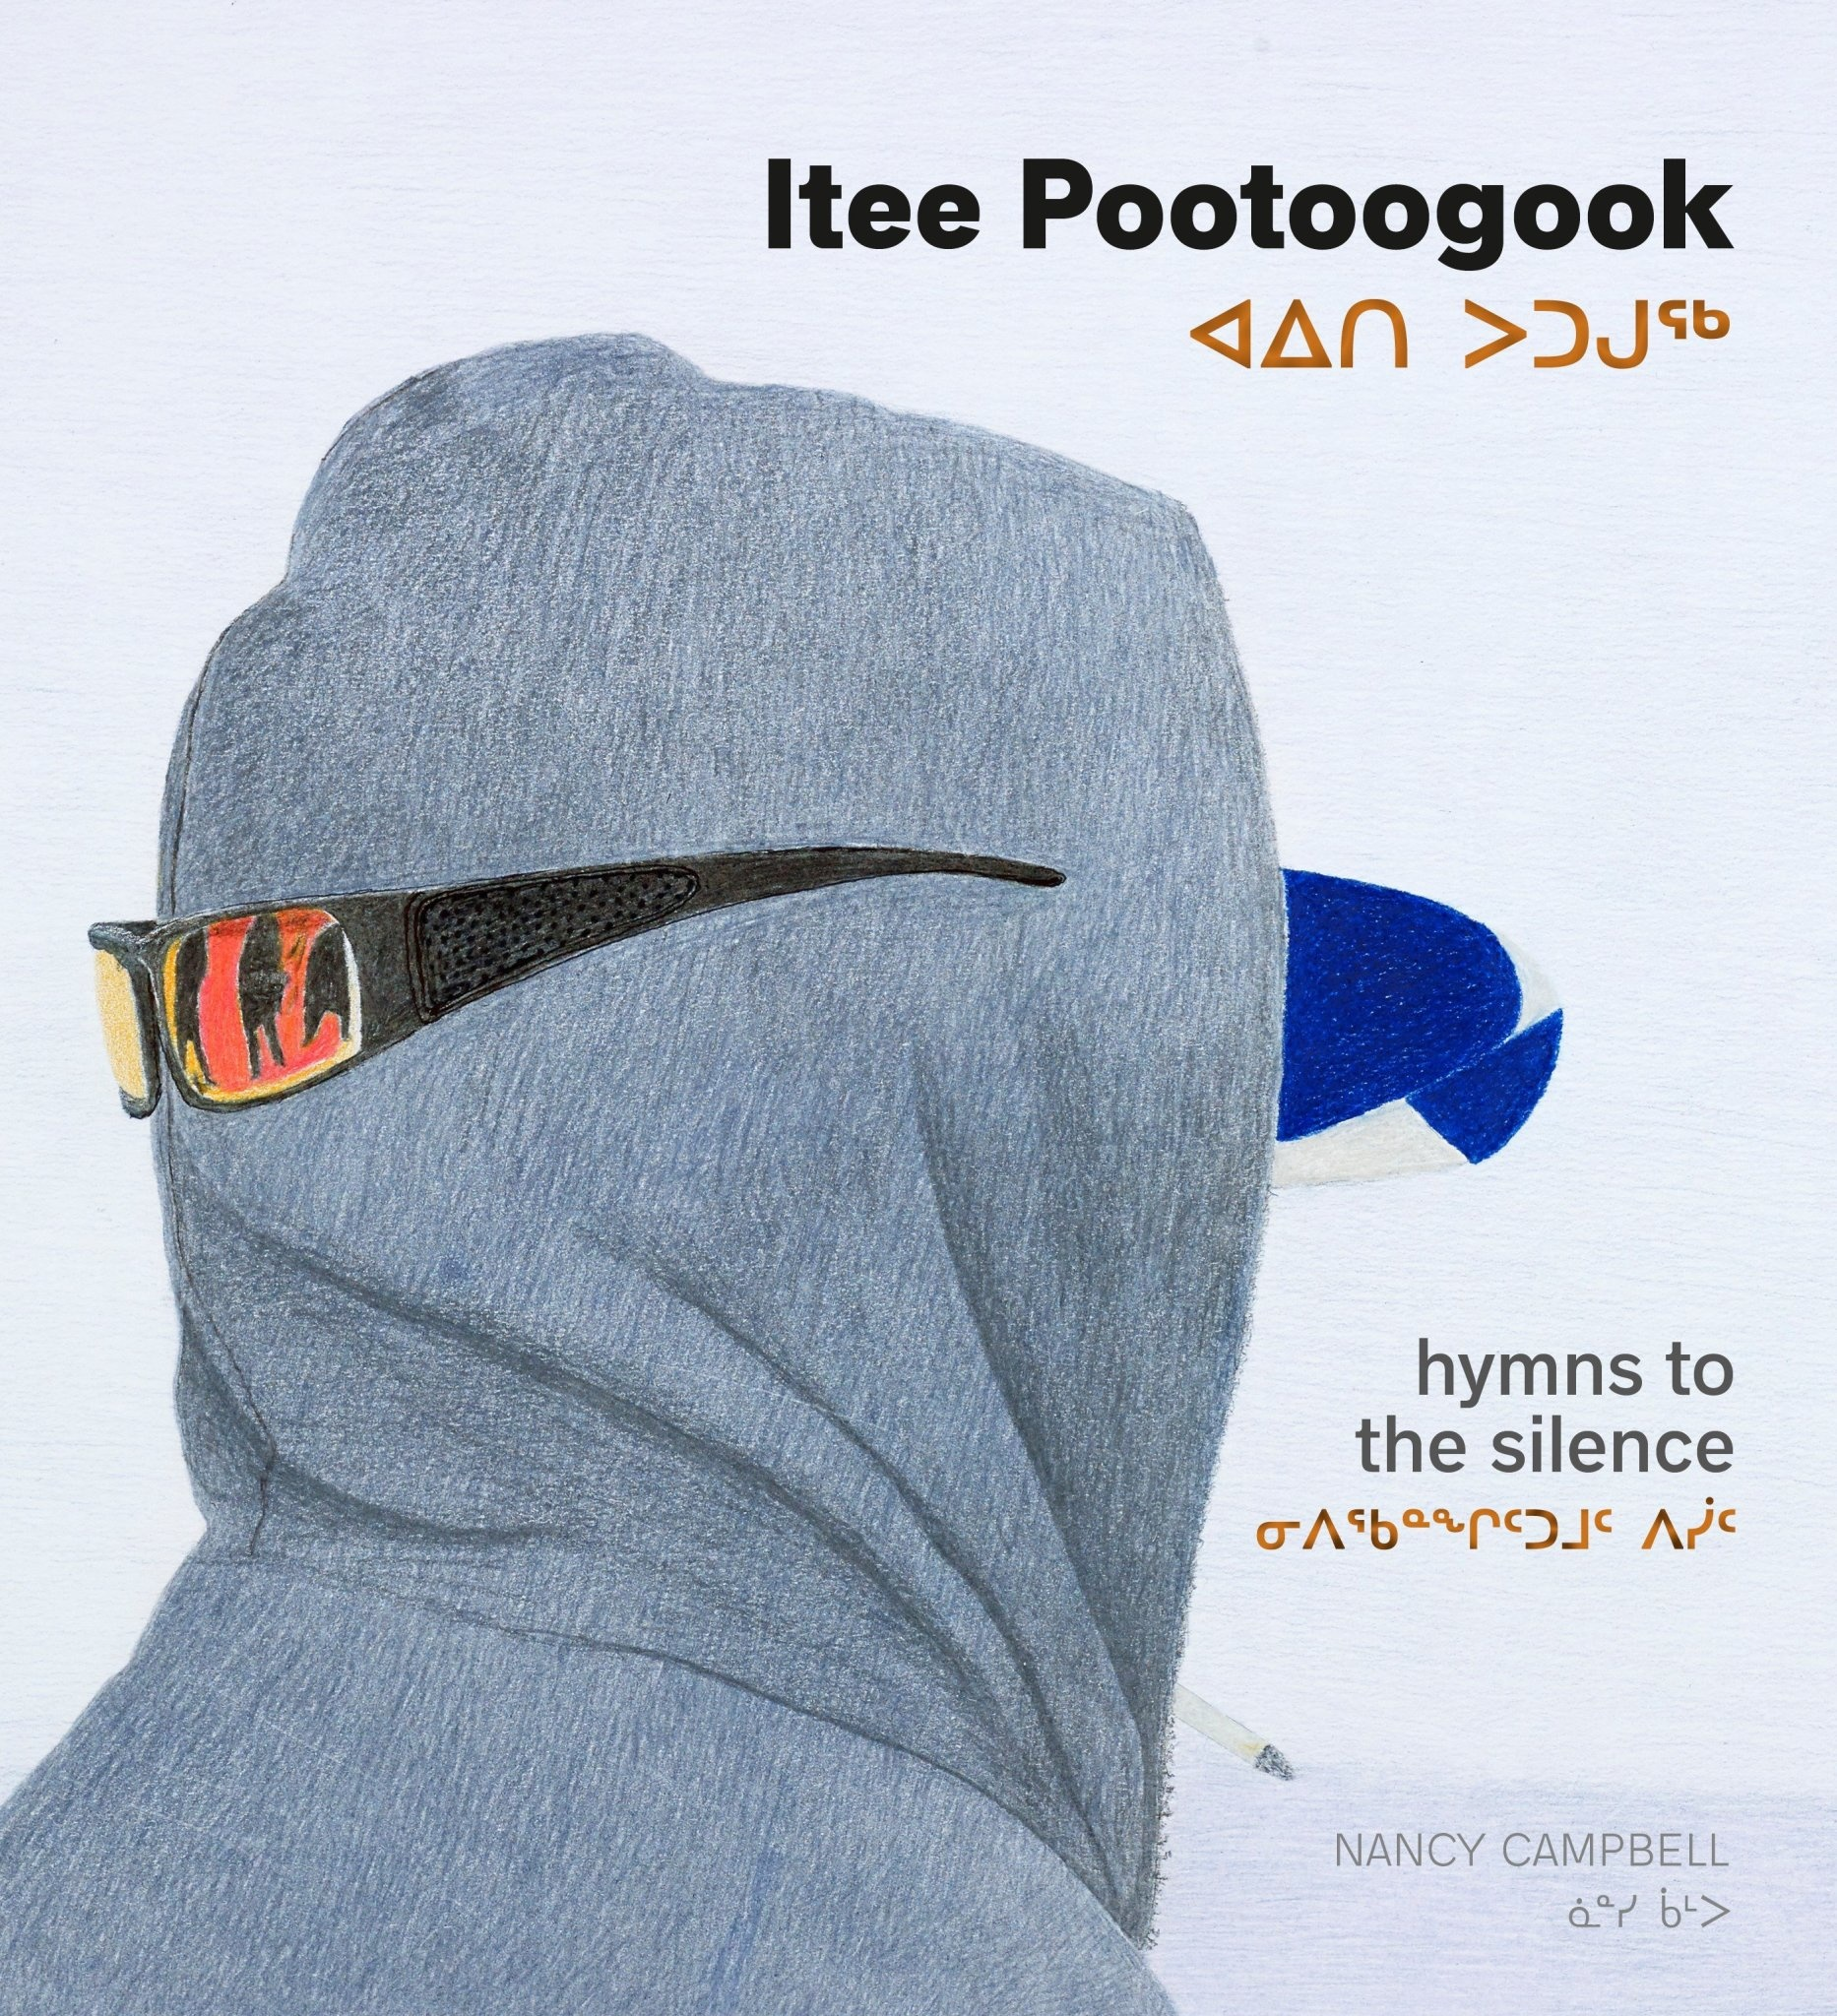 Itee Pootoogook - Hymns to the Silence